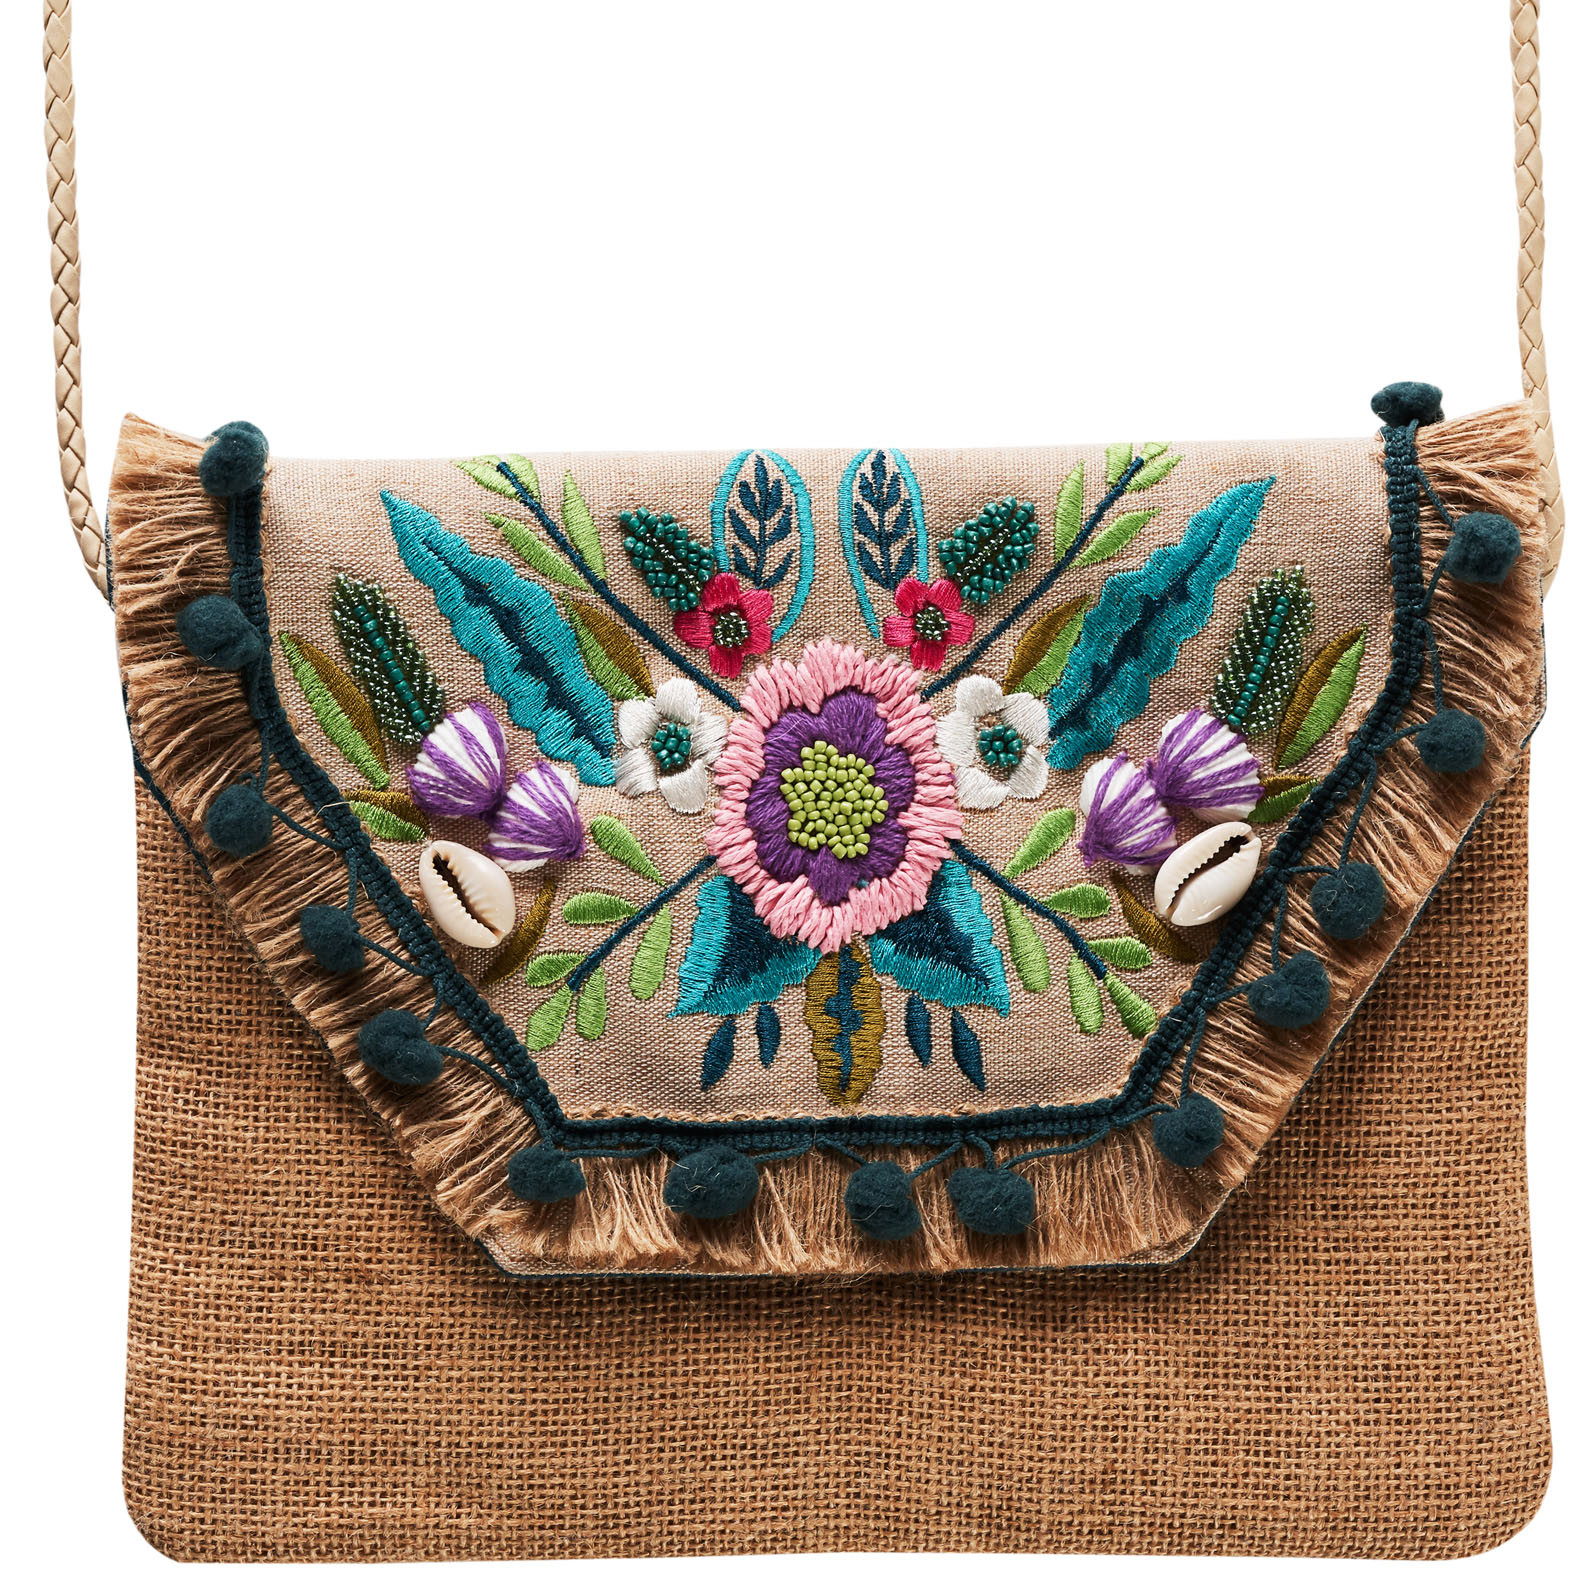 Bohemia Summerfest Clutch